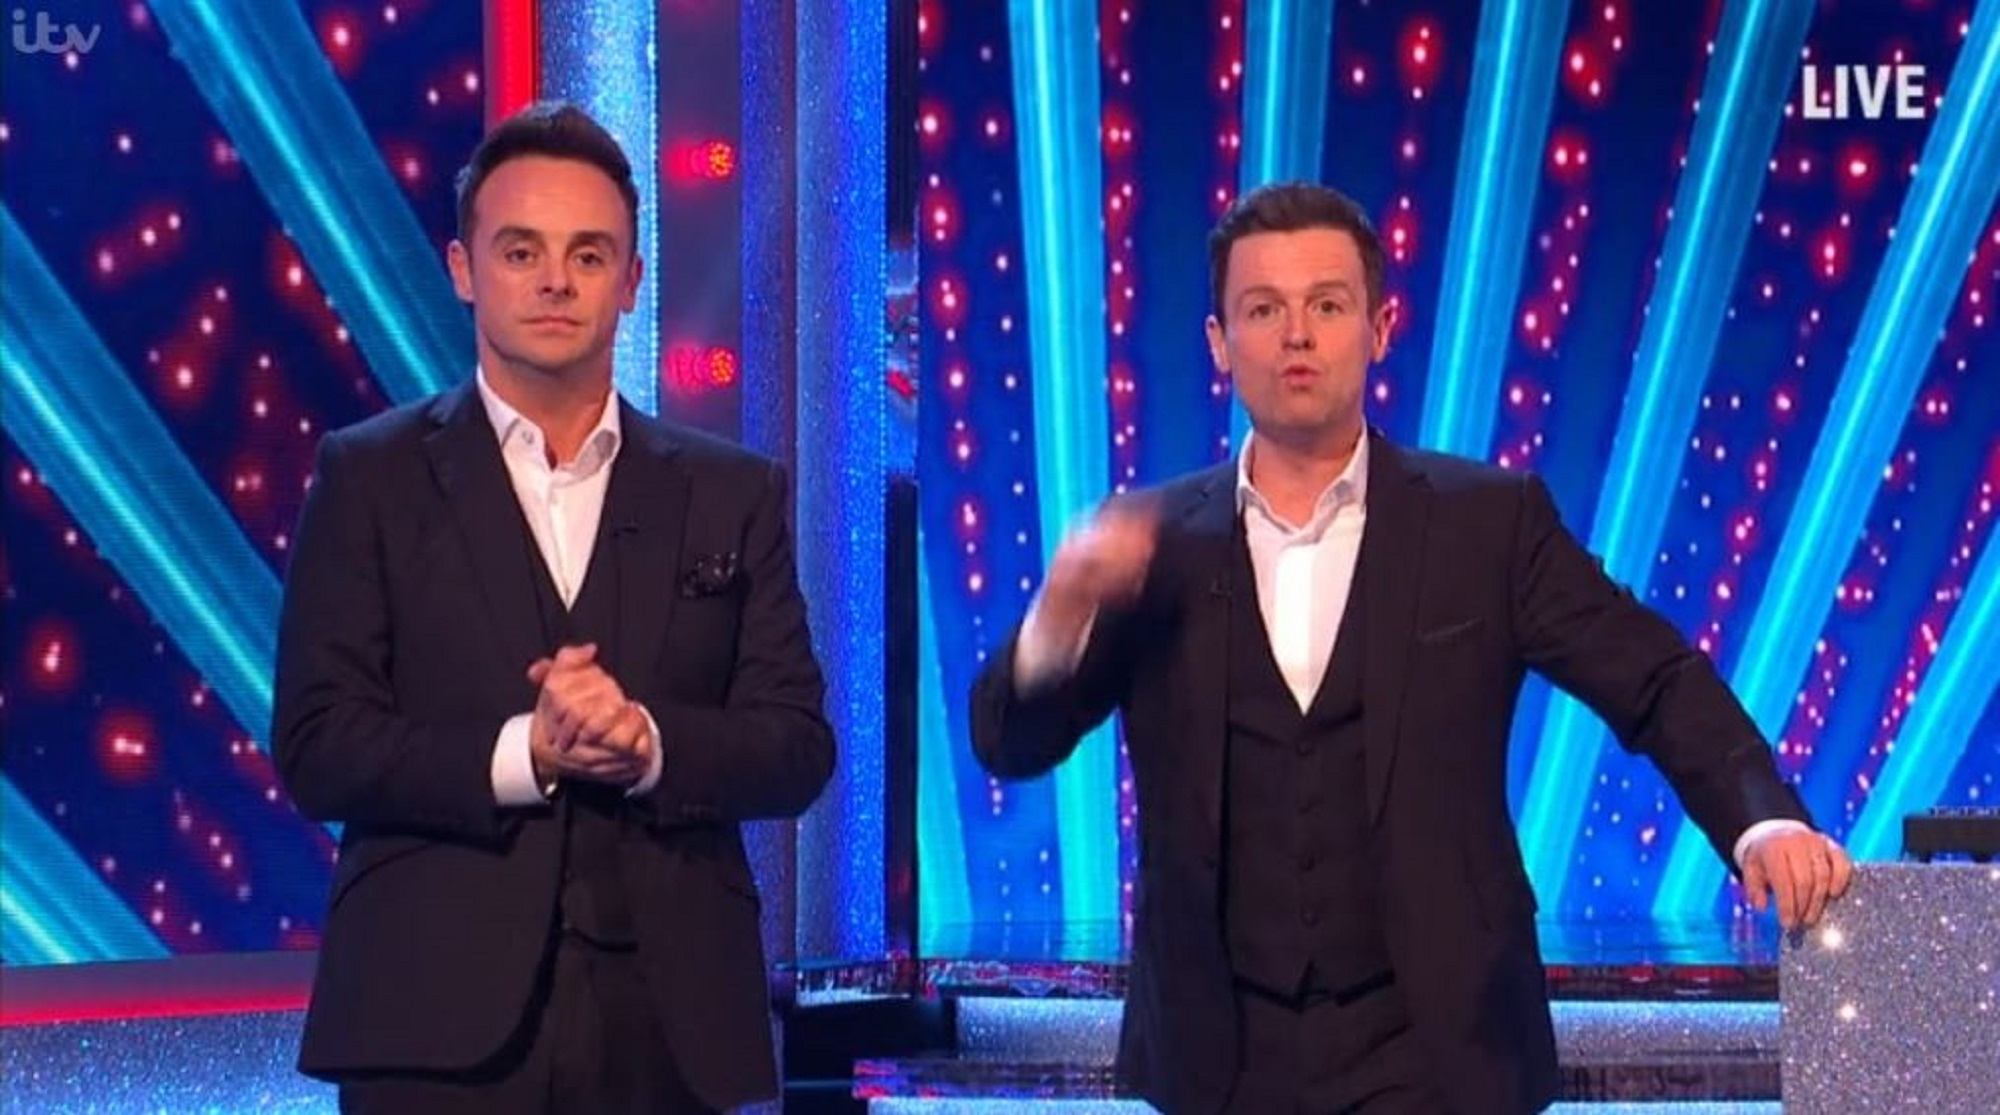 Coronavirus: Ant and Dec's Saturday Night Takeaway live shows scrapped for pre-recorded episodes